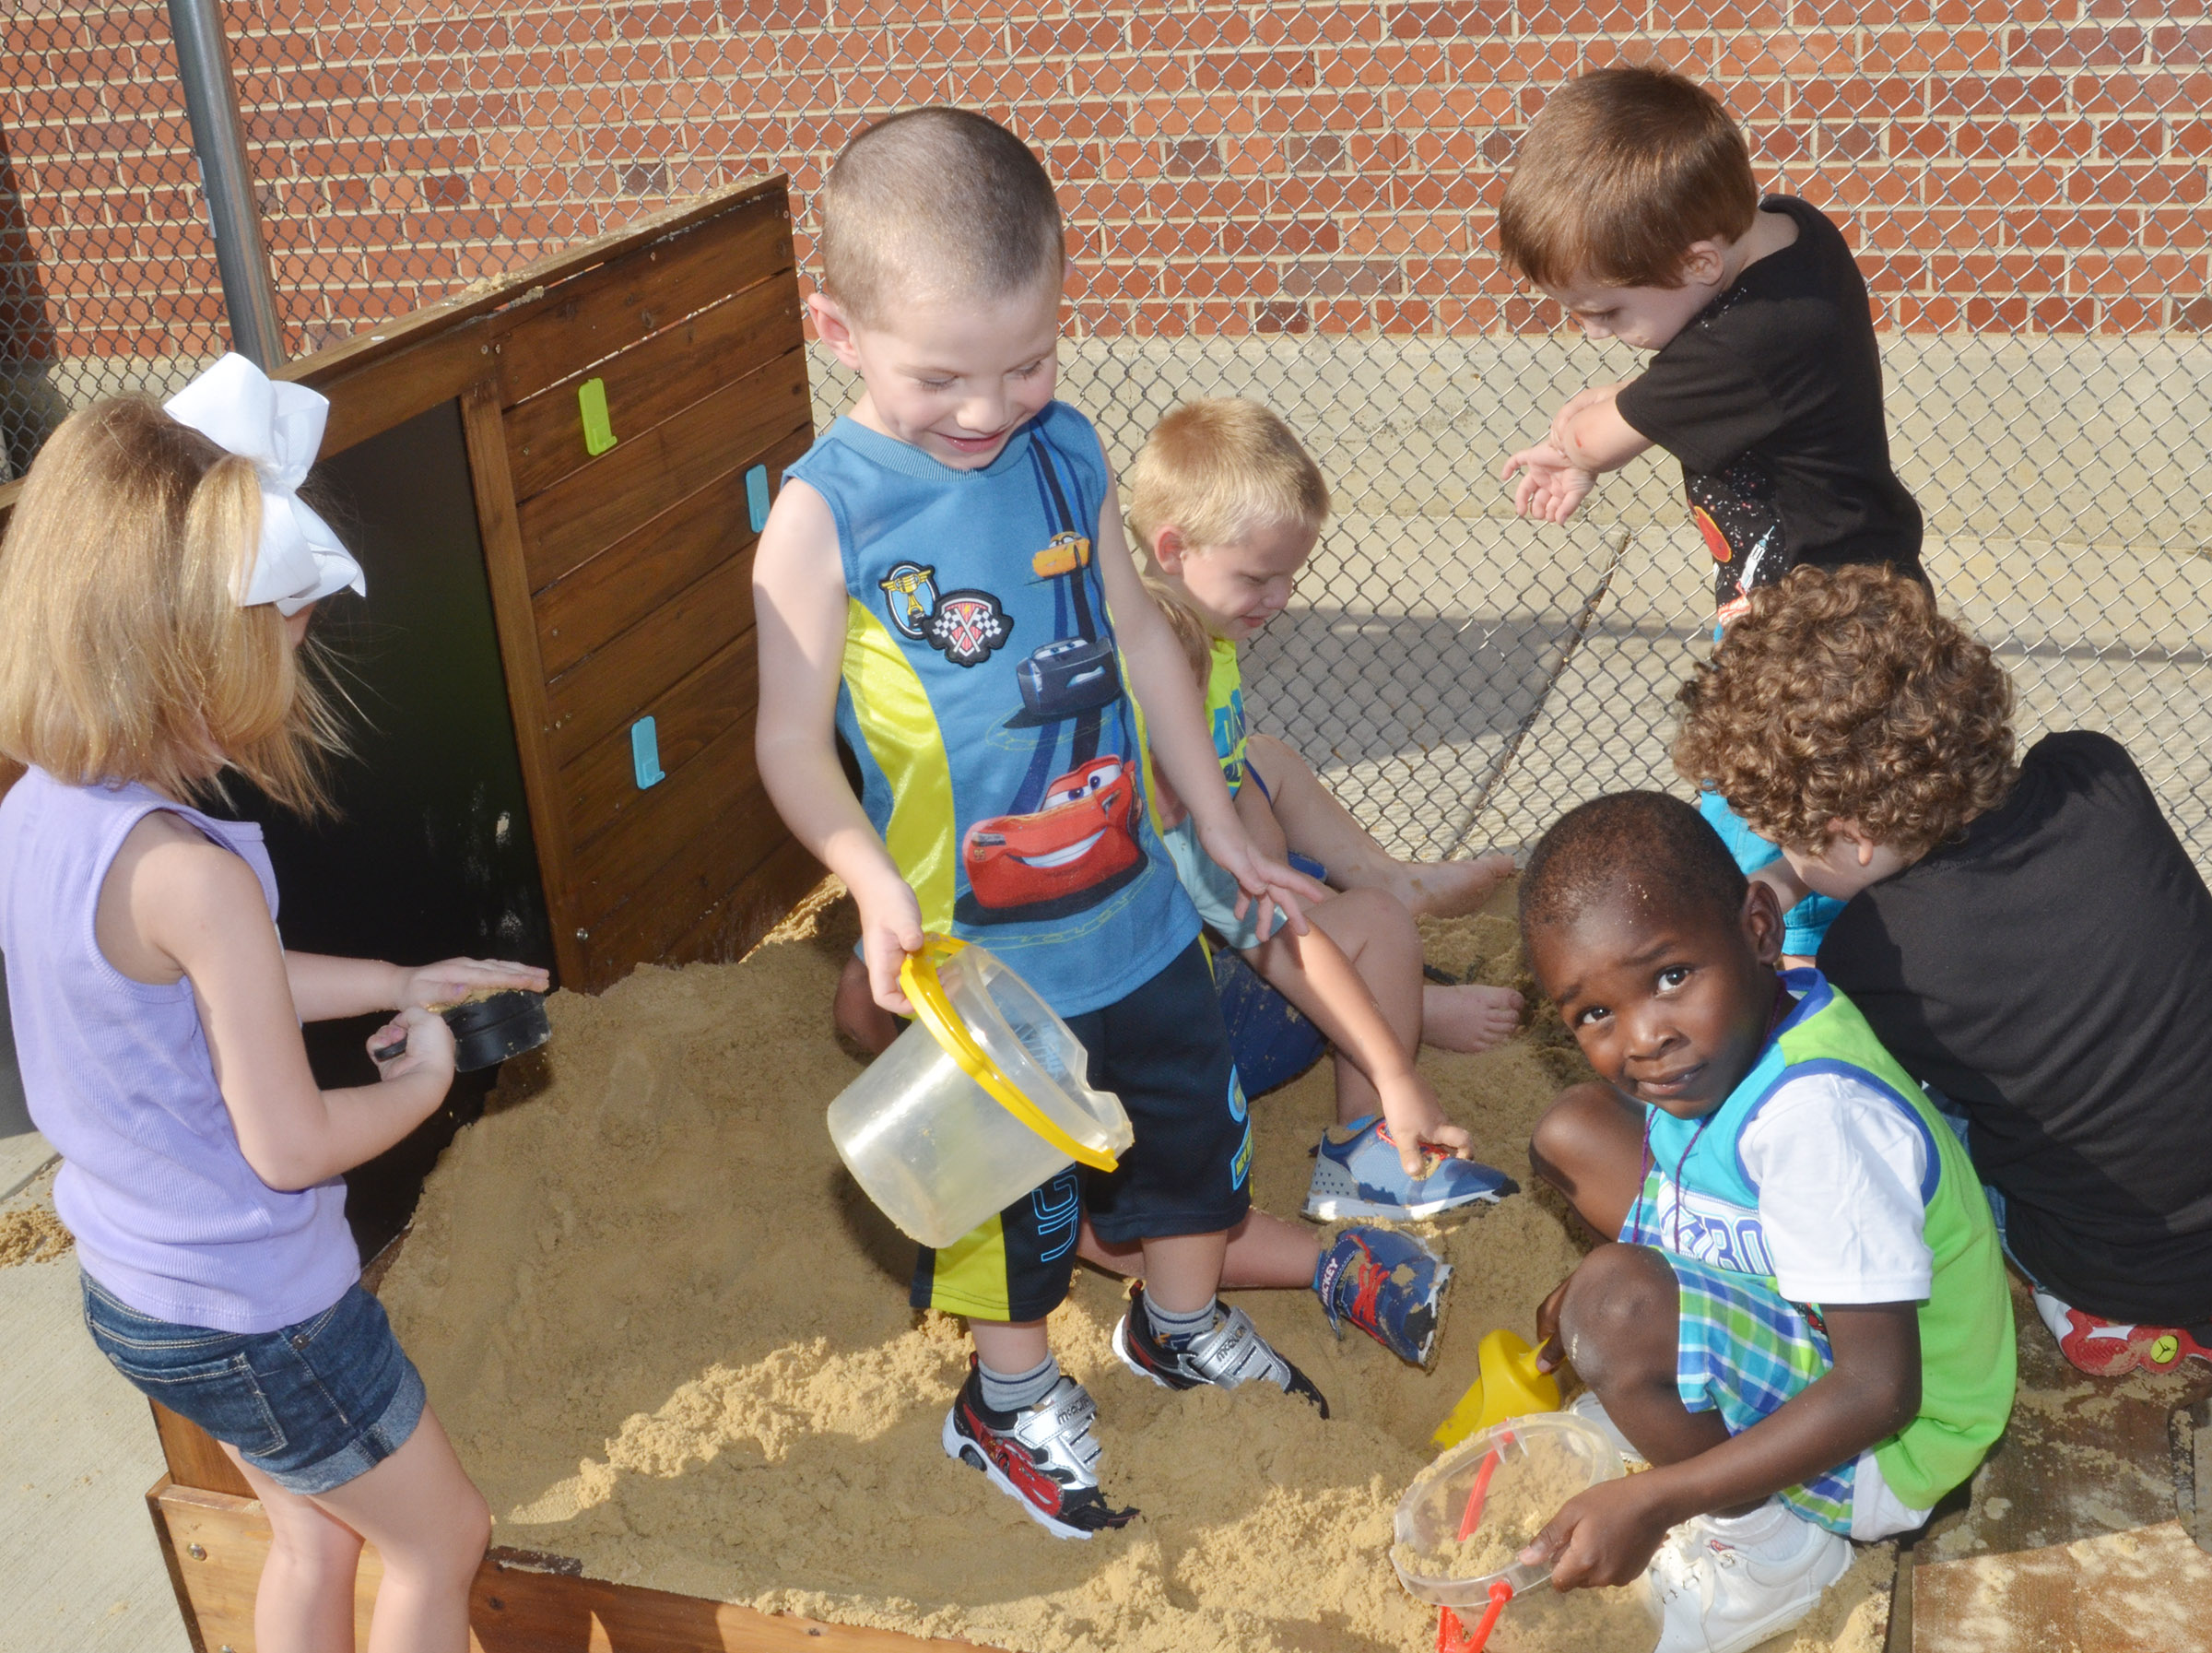 CES preschool students play in their sandbox.